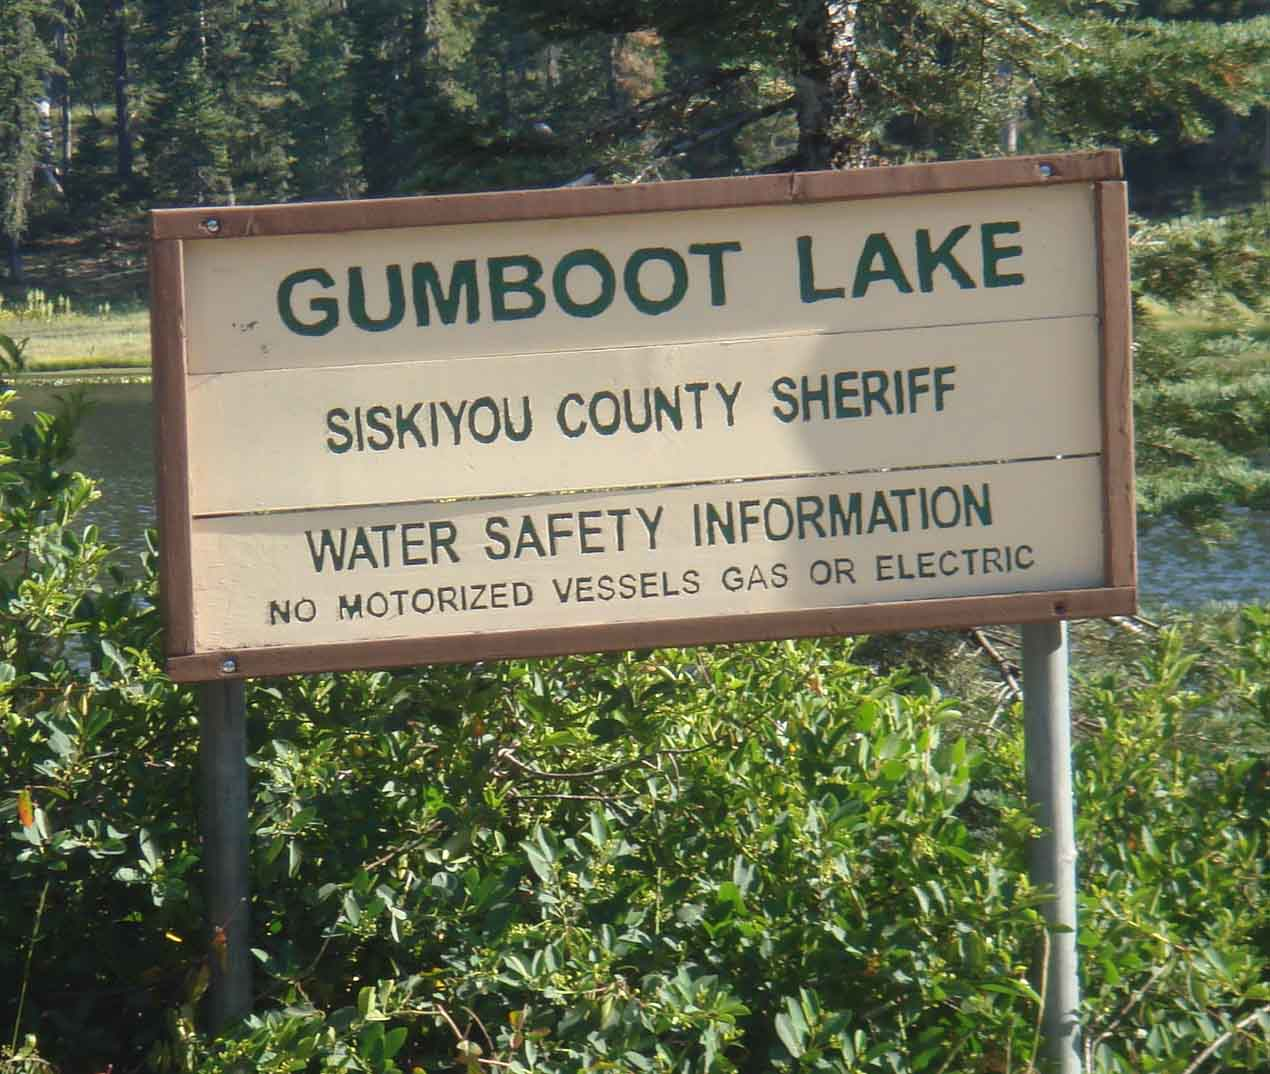 Gumboot Lake Sheriff's Warning